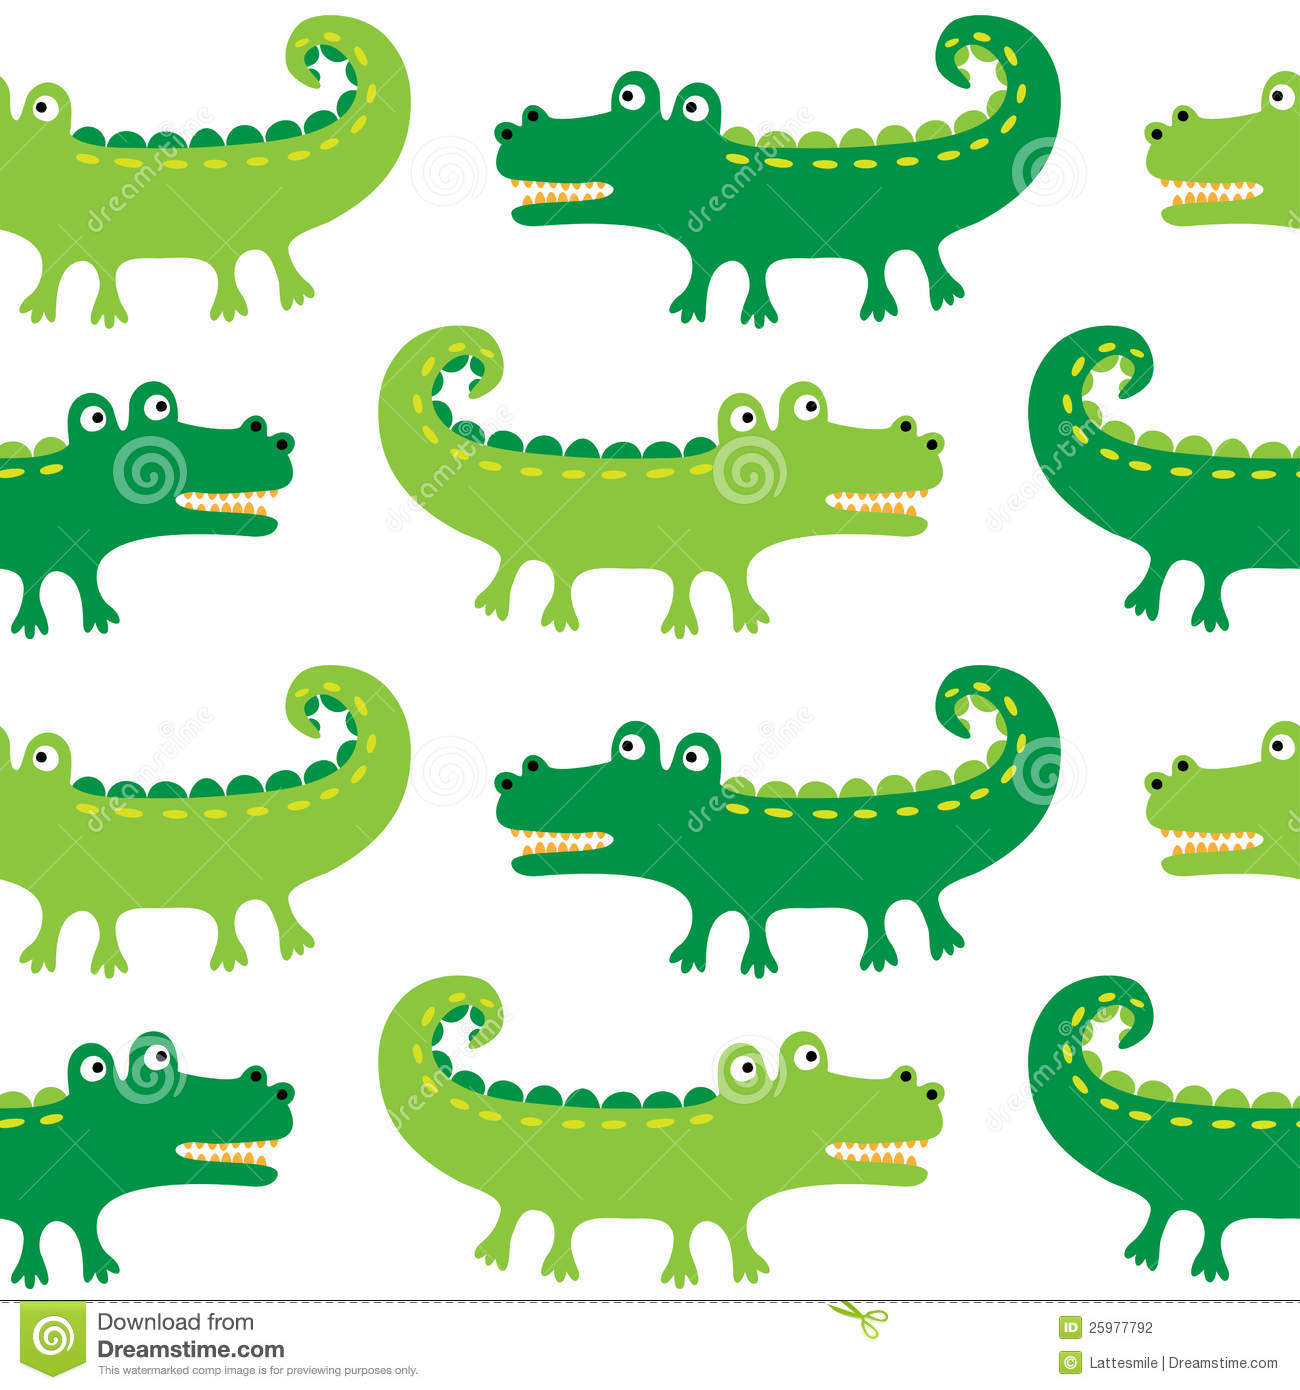 Gator Web Design